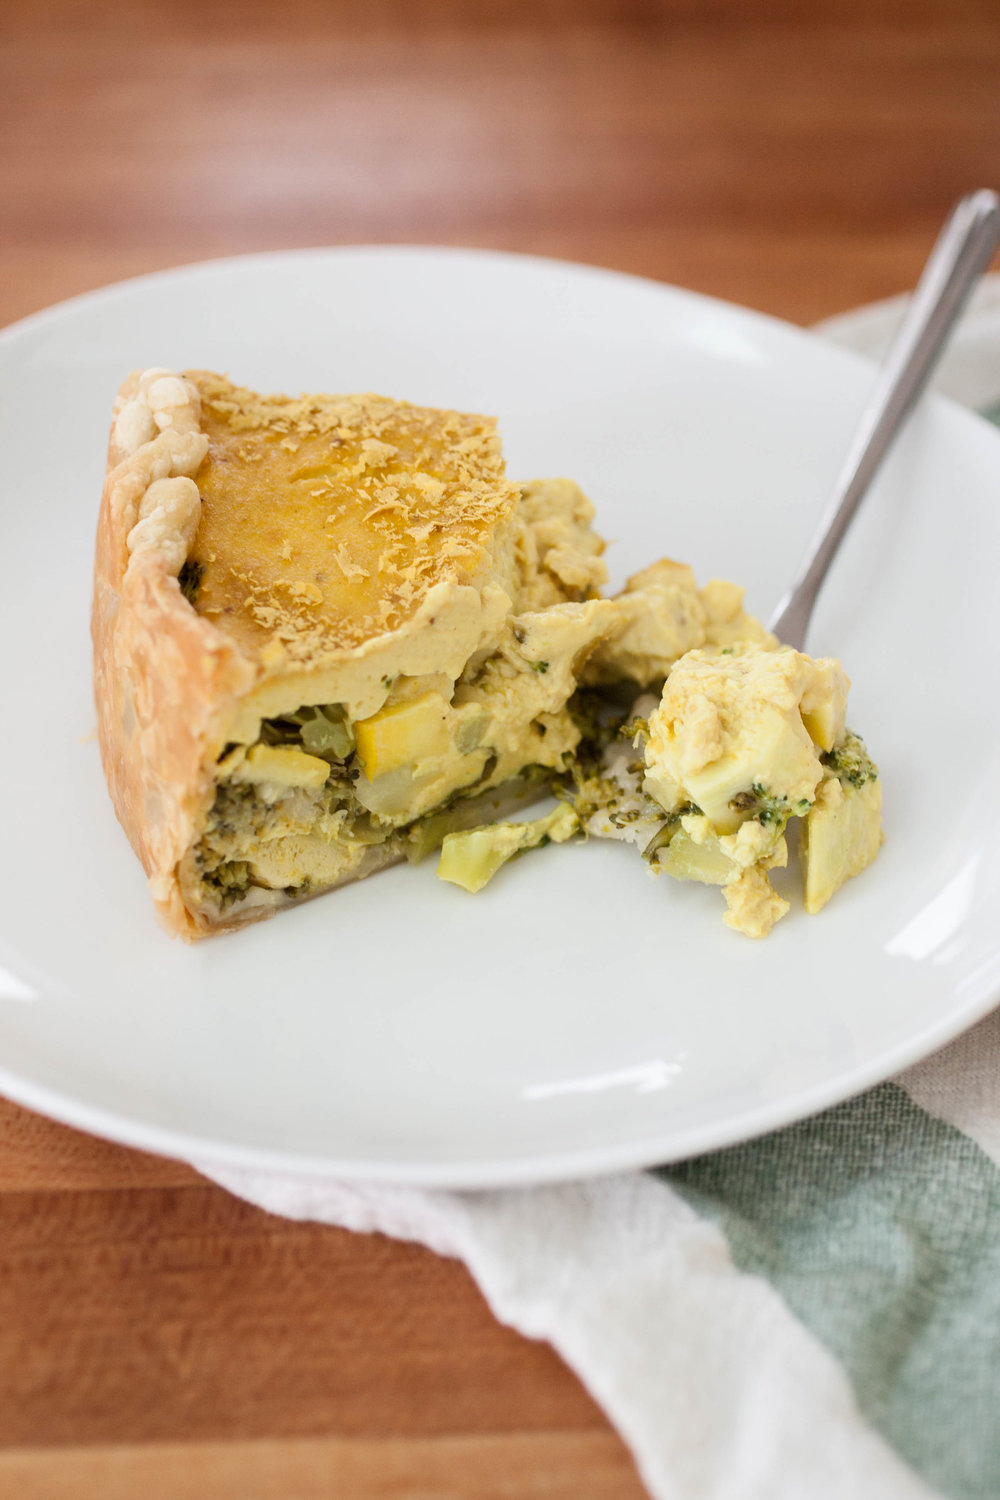 Produce On Parade - Broccoli & Squash Quiche - Flaky puff pastry envelops a fluffy, cheesy, vegan quiche that's loaded with nutritious broccoli, squash, and spinach. Kala namak salt gives this savory dish that eggy quality and tofu provides healthy protein. It's a super easy meal that's perfect for breakfast or dinner.